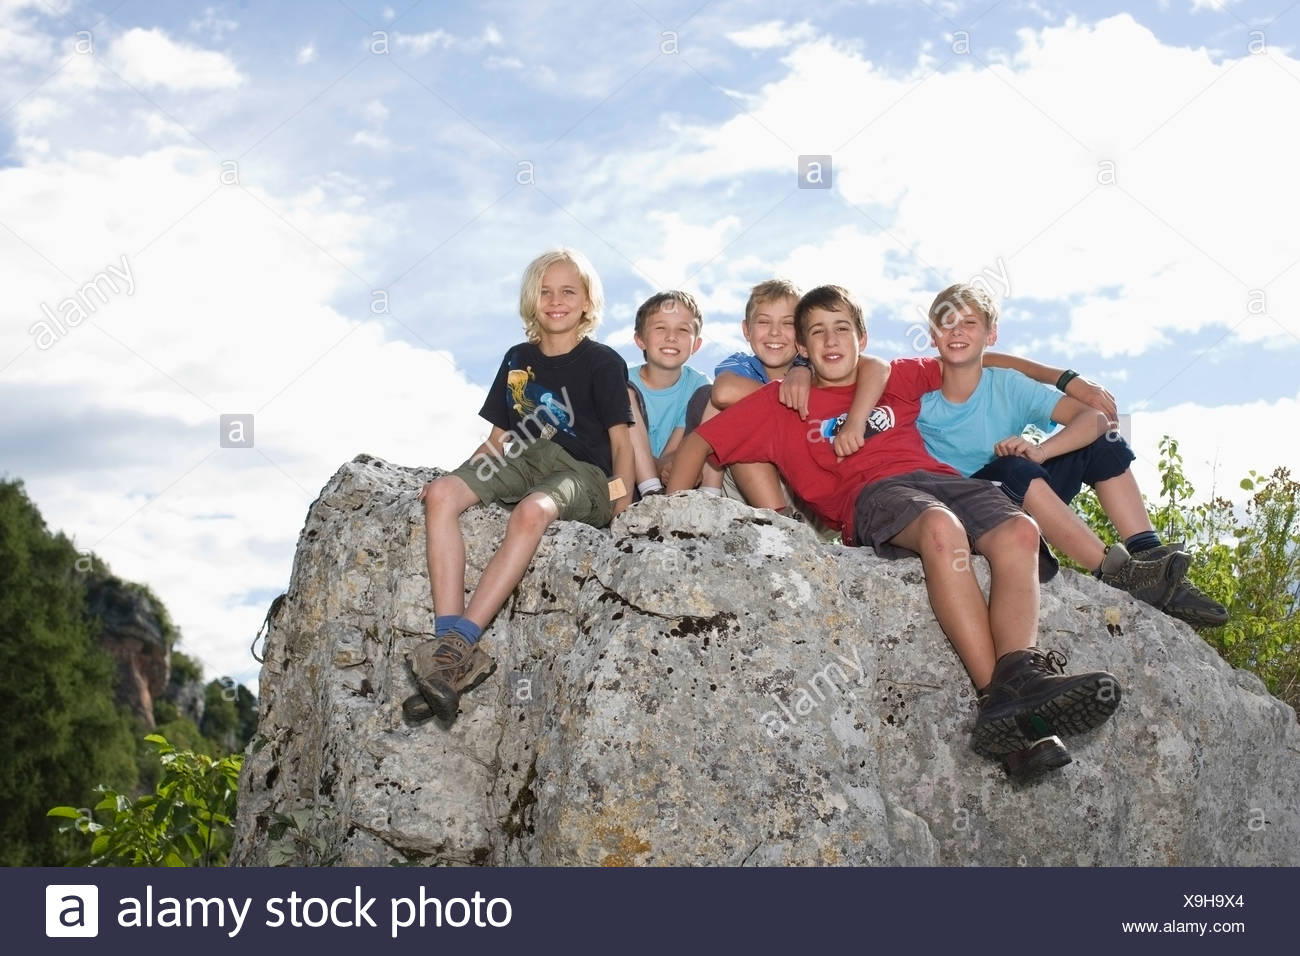 Group of children on top of mountain - Stock Image